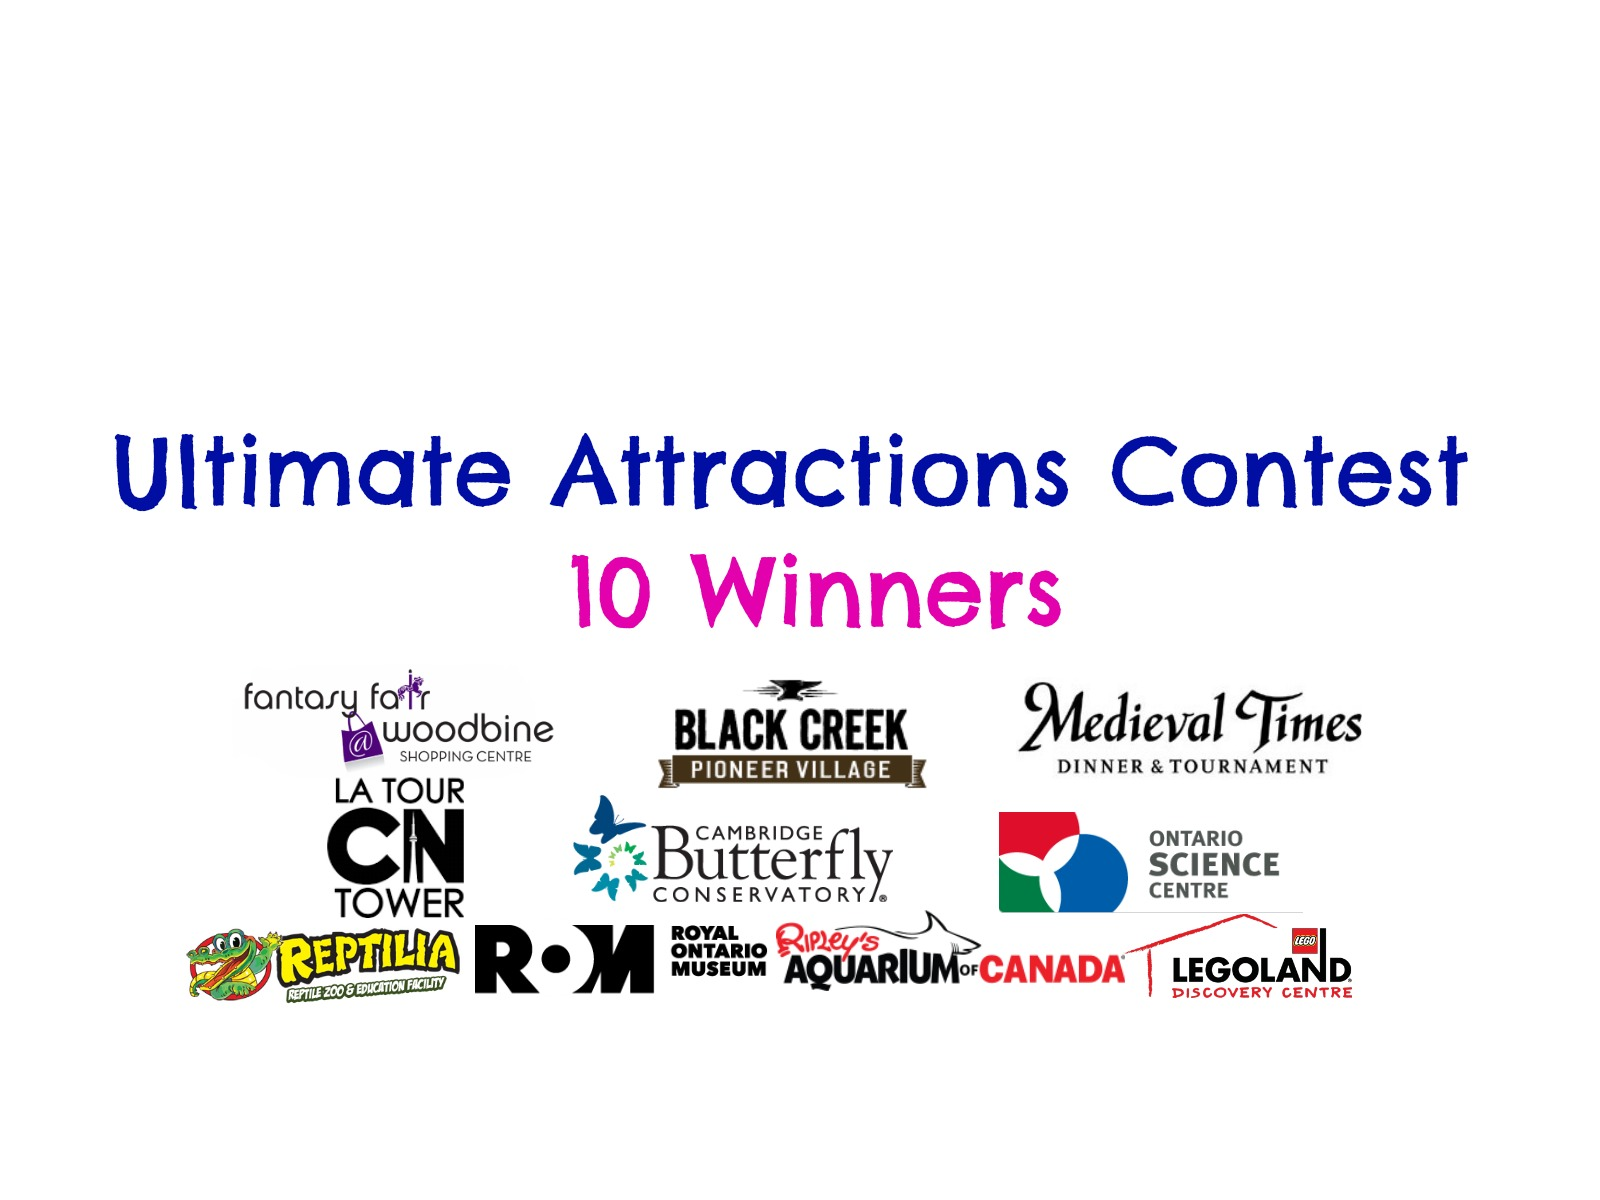 Ultimate Attractions Contest (10 Winners)